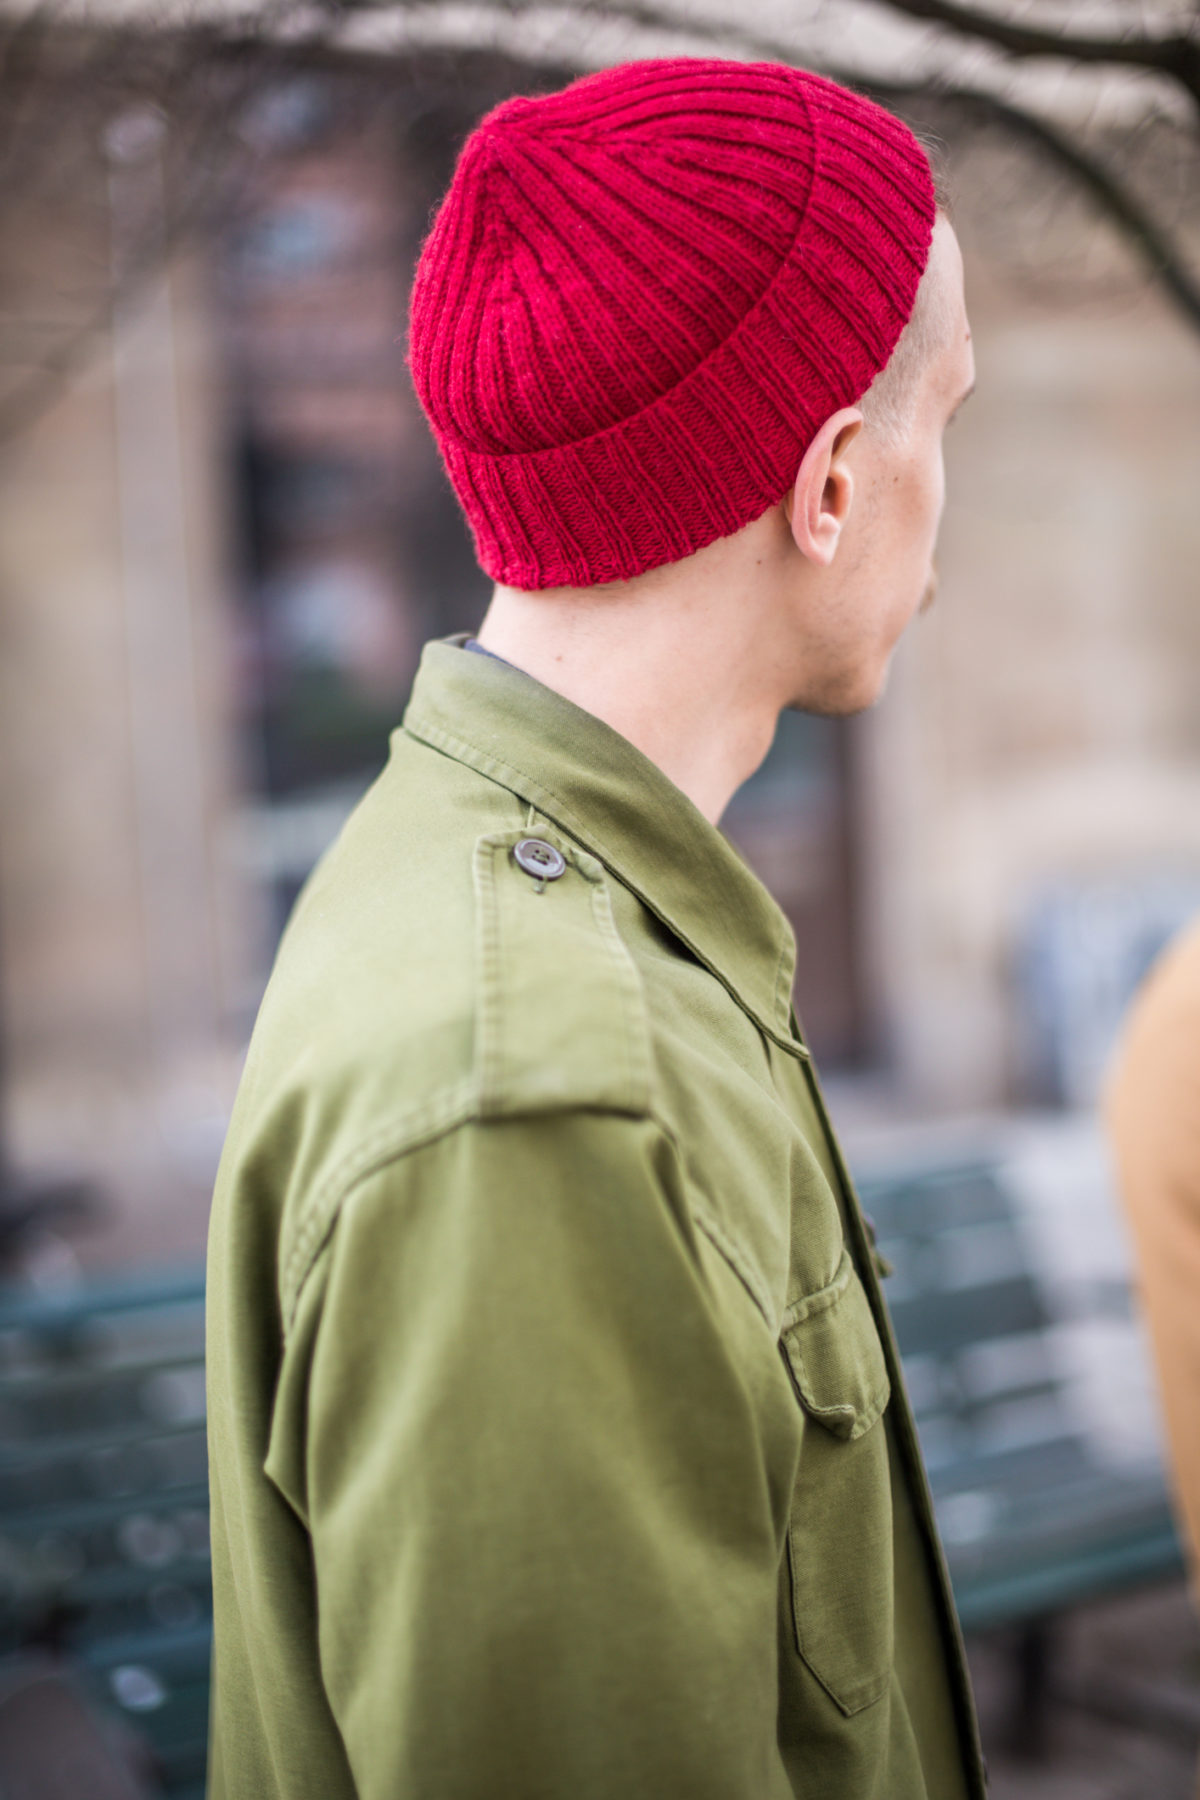 How to wear your red cap: Single fold